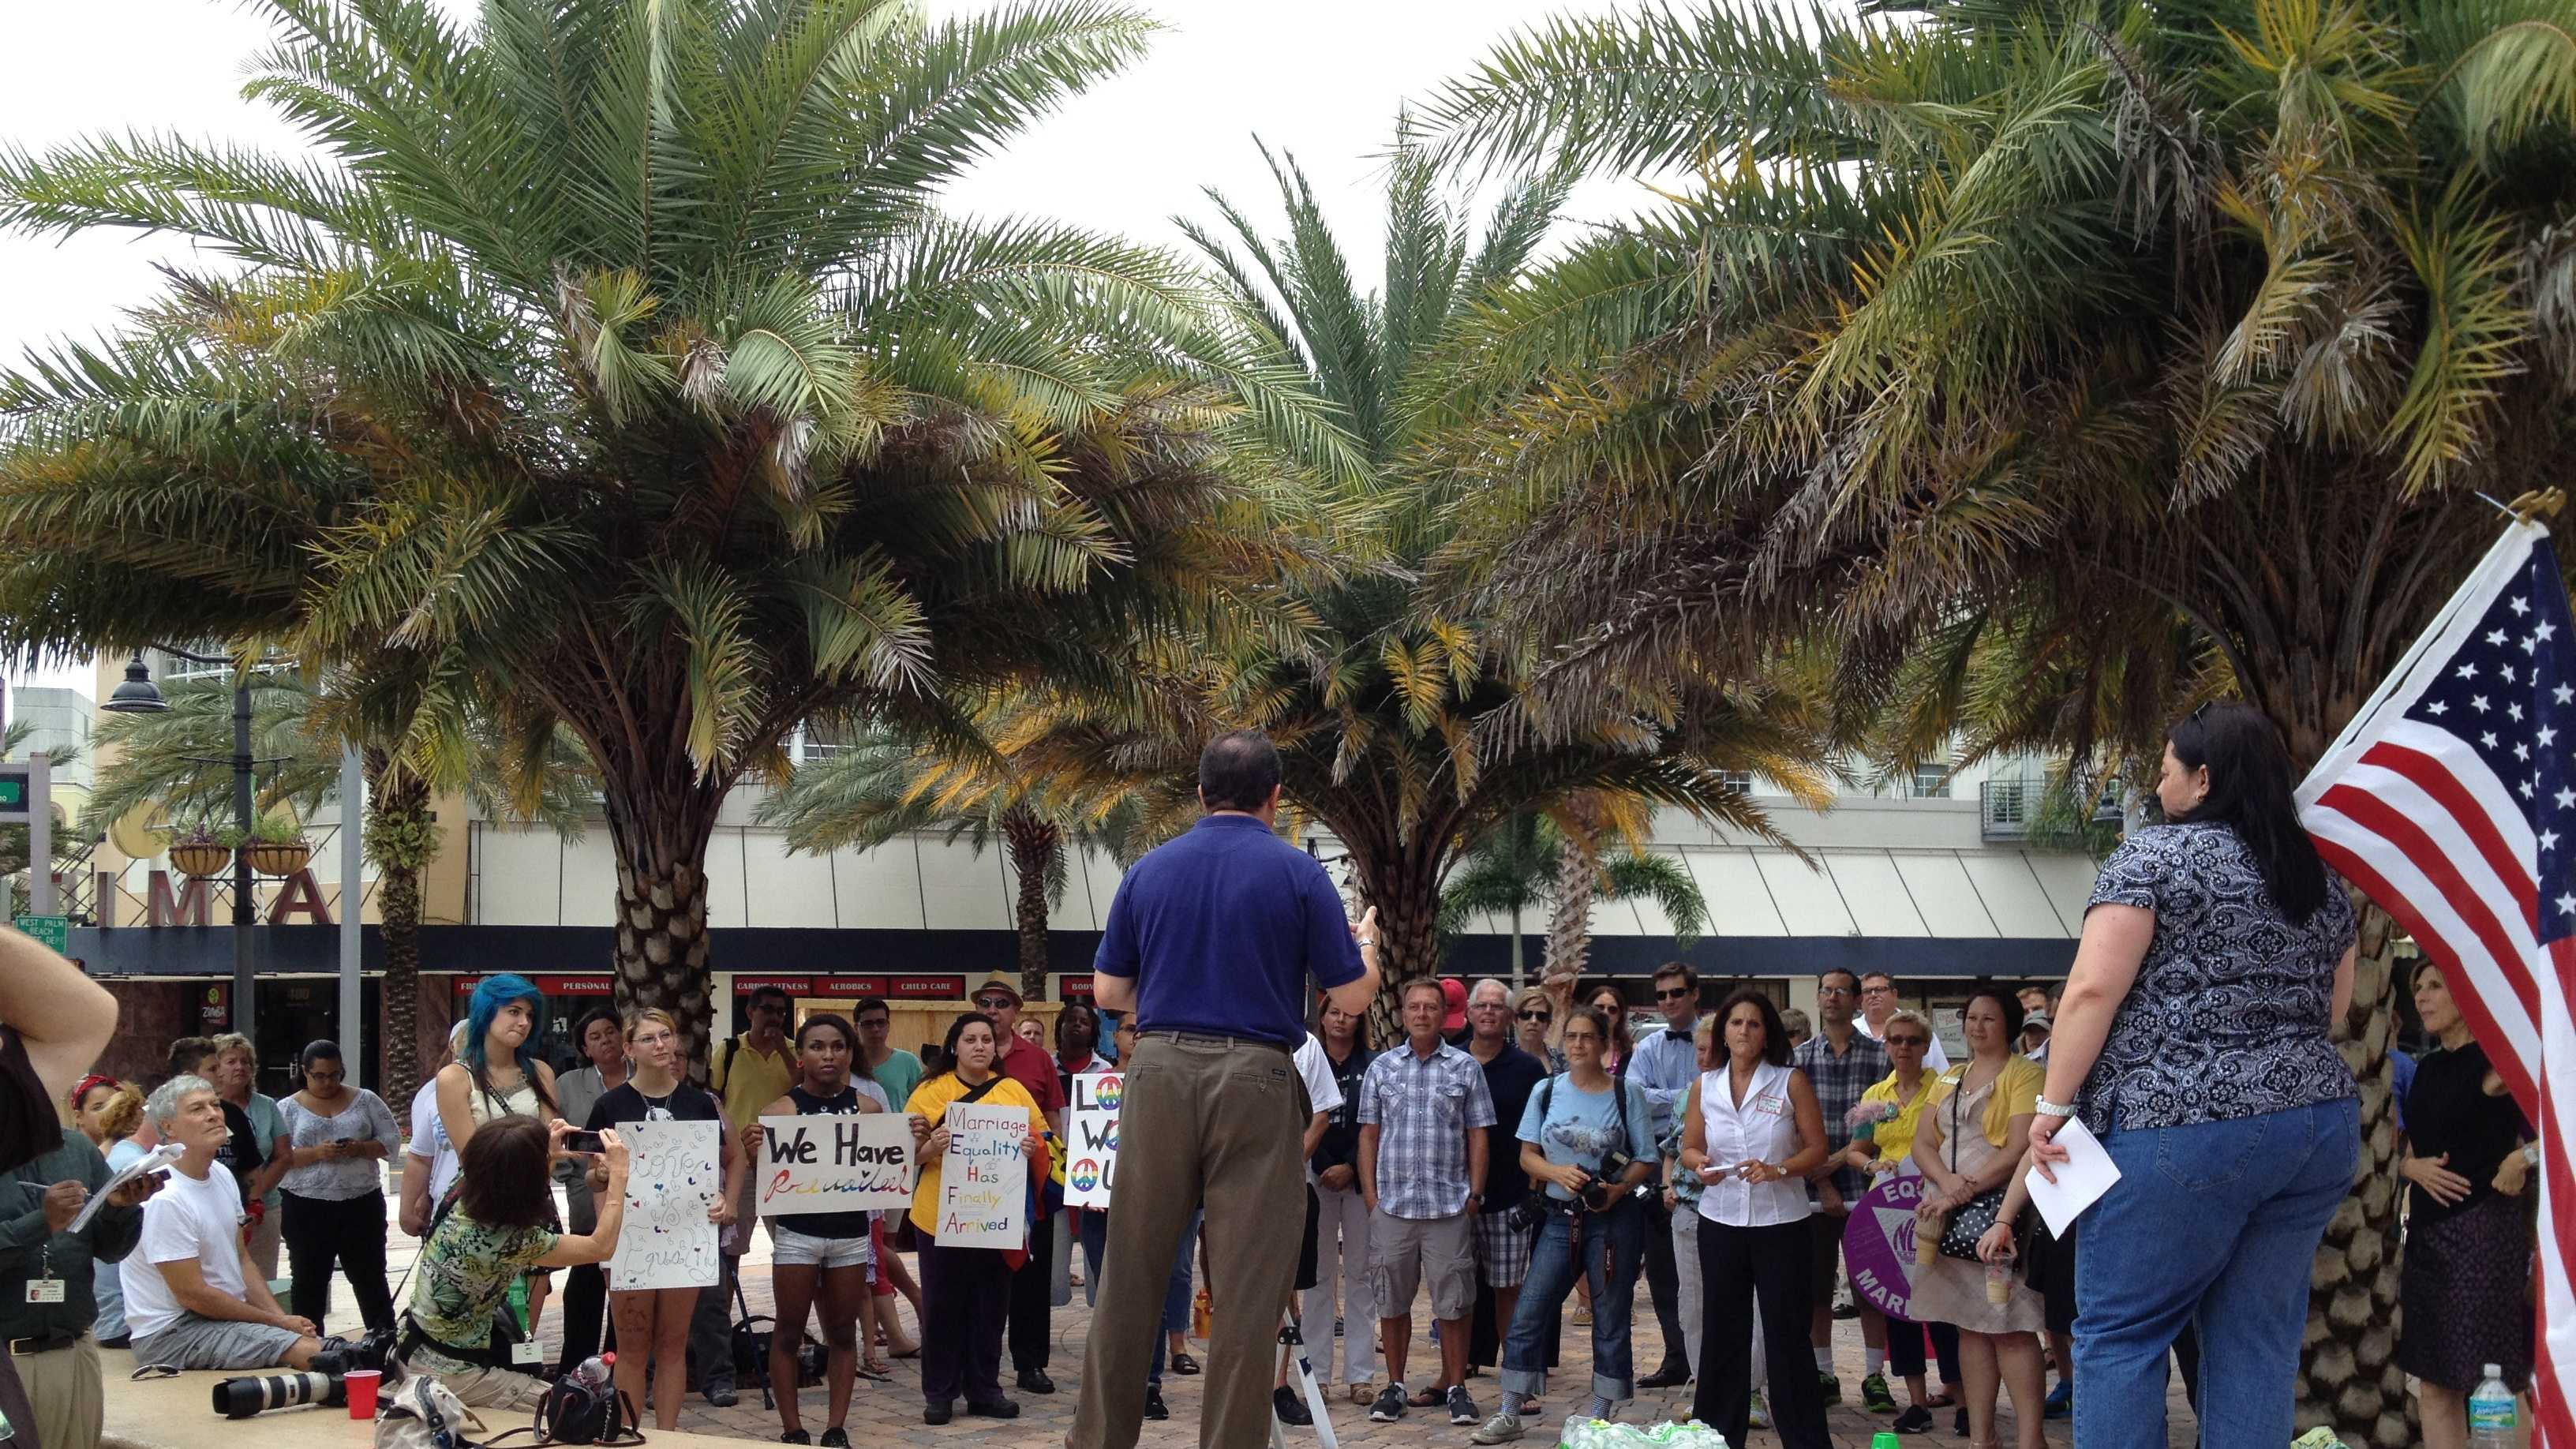 About 50 people gather in support of same-sex marriage during a rally in downtown West Palm Beach.